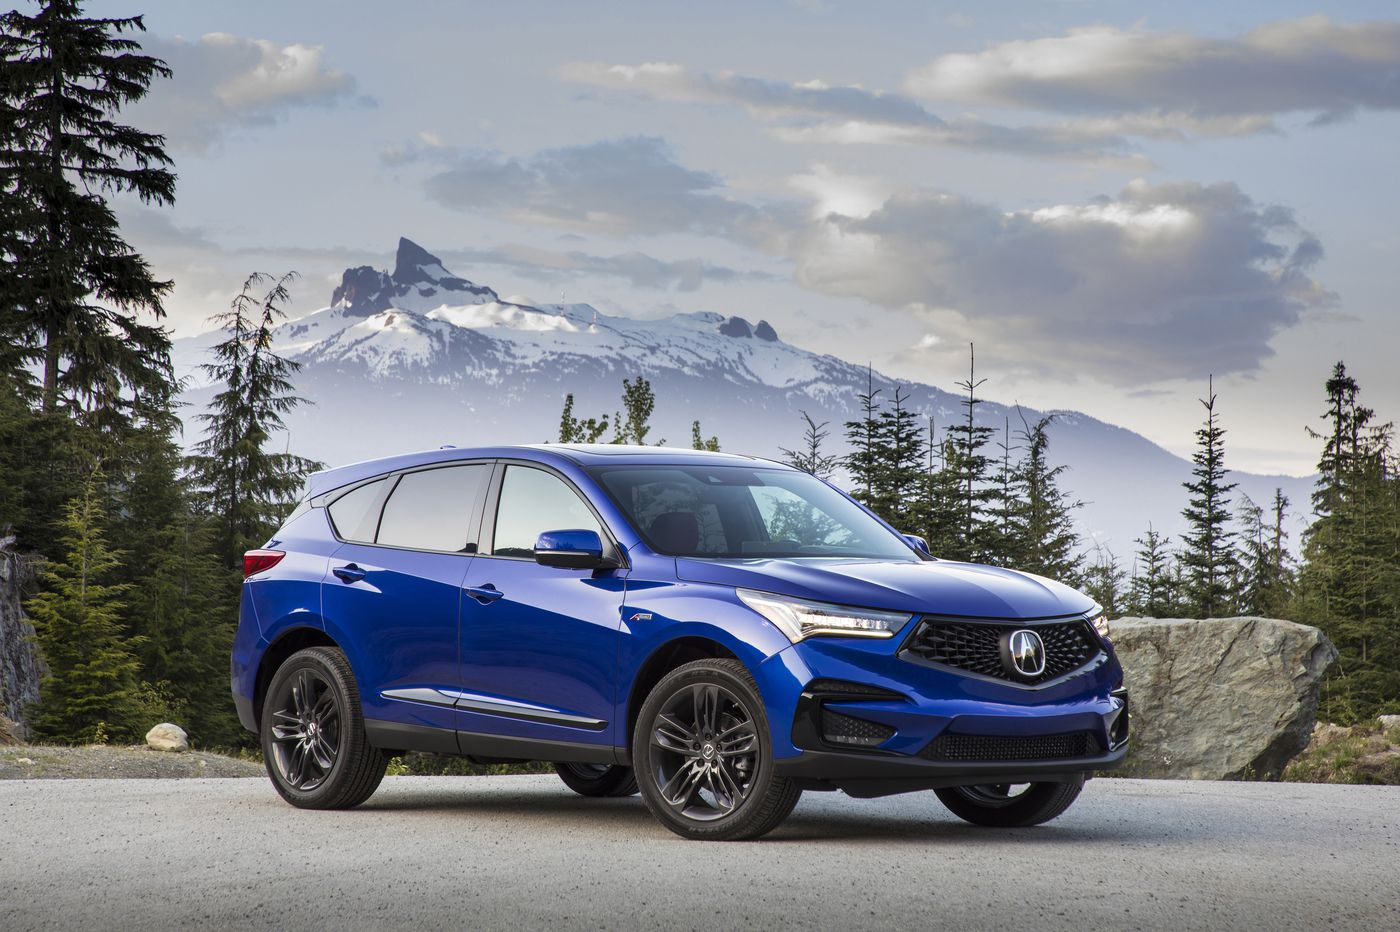 2019 Acura RDX: Smooth and fun, with a touch of annoyance